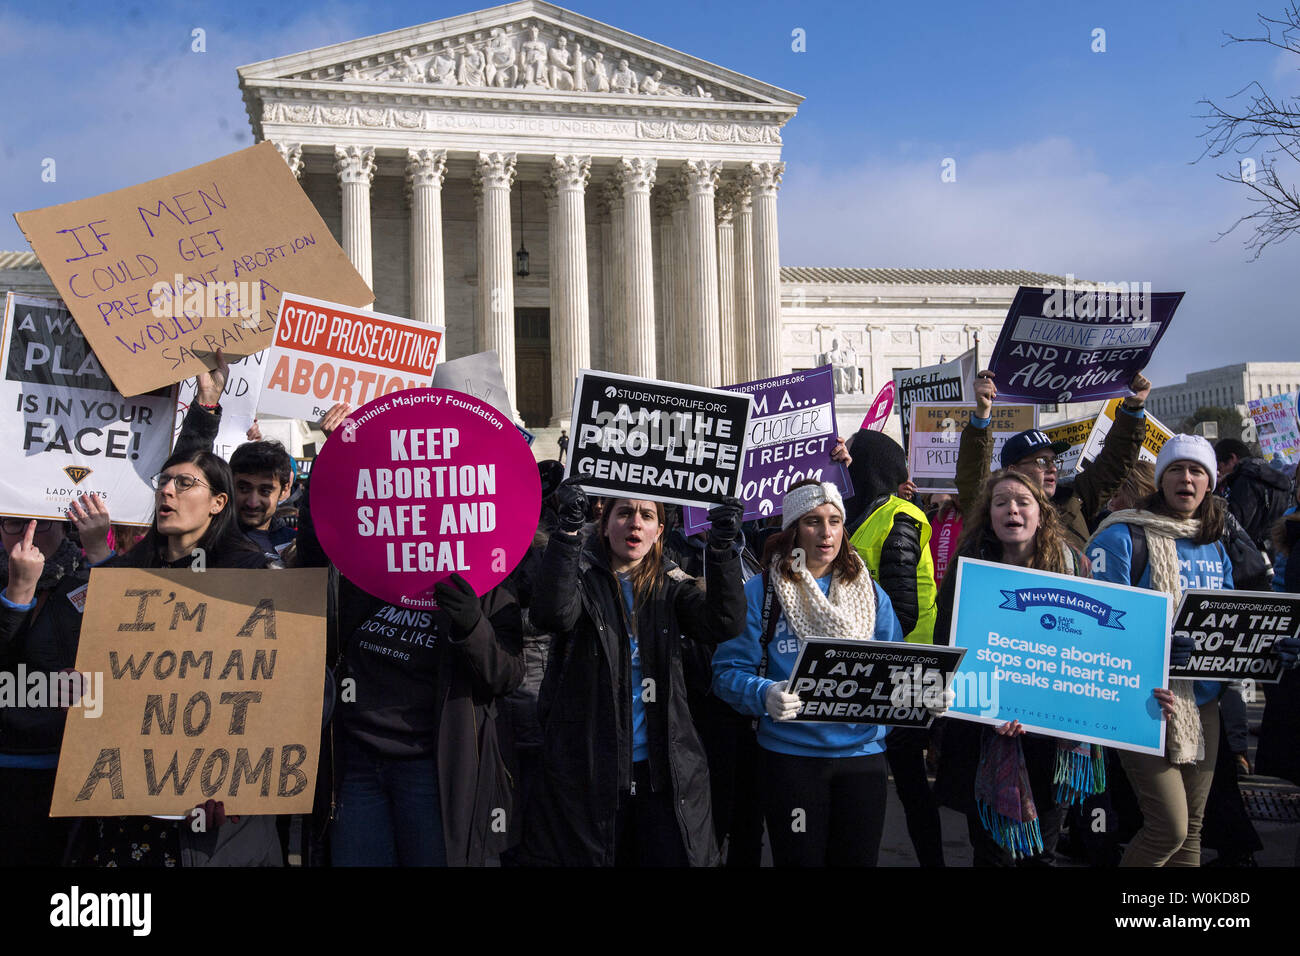 Pro-choice and anti-abortion activist square off at the